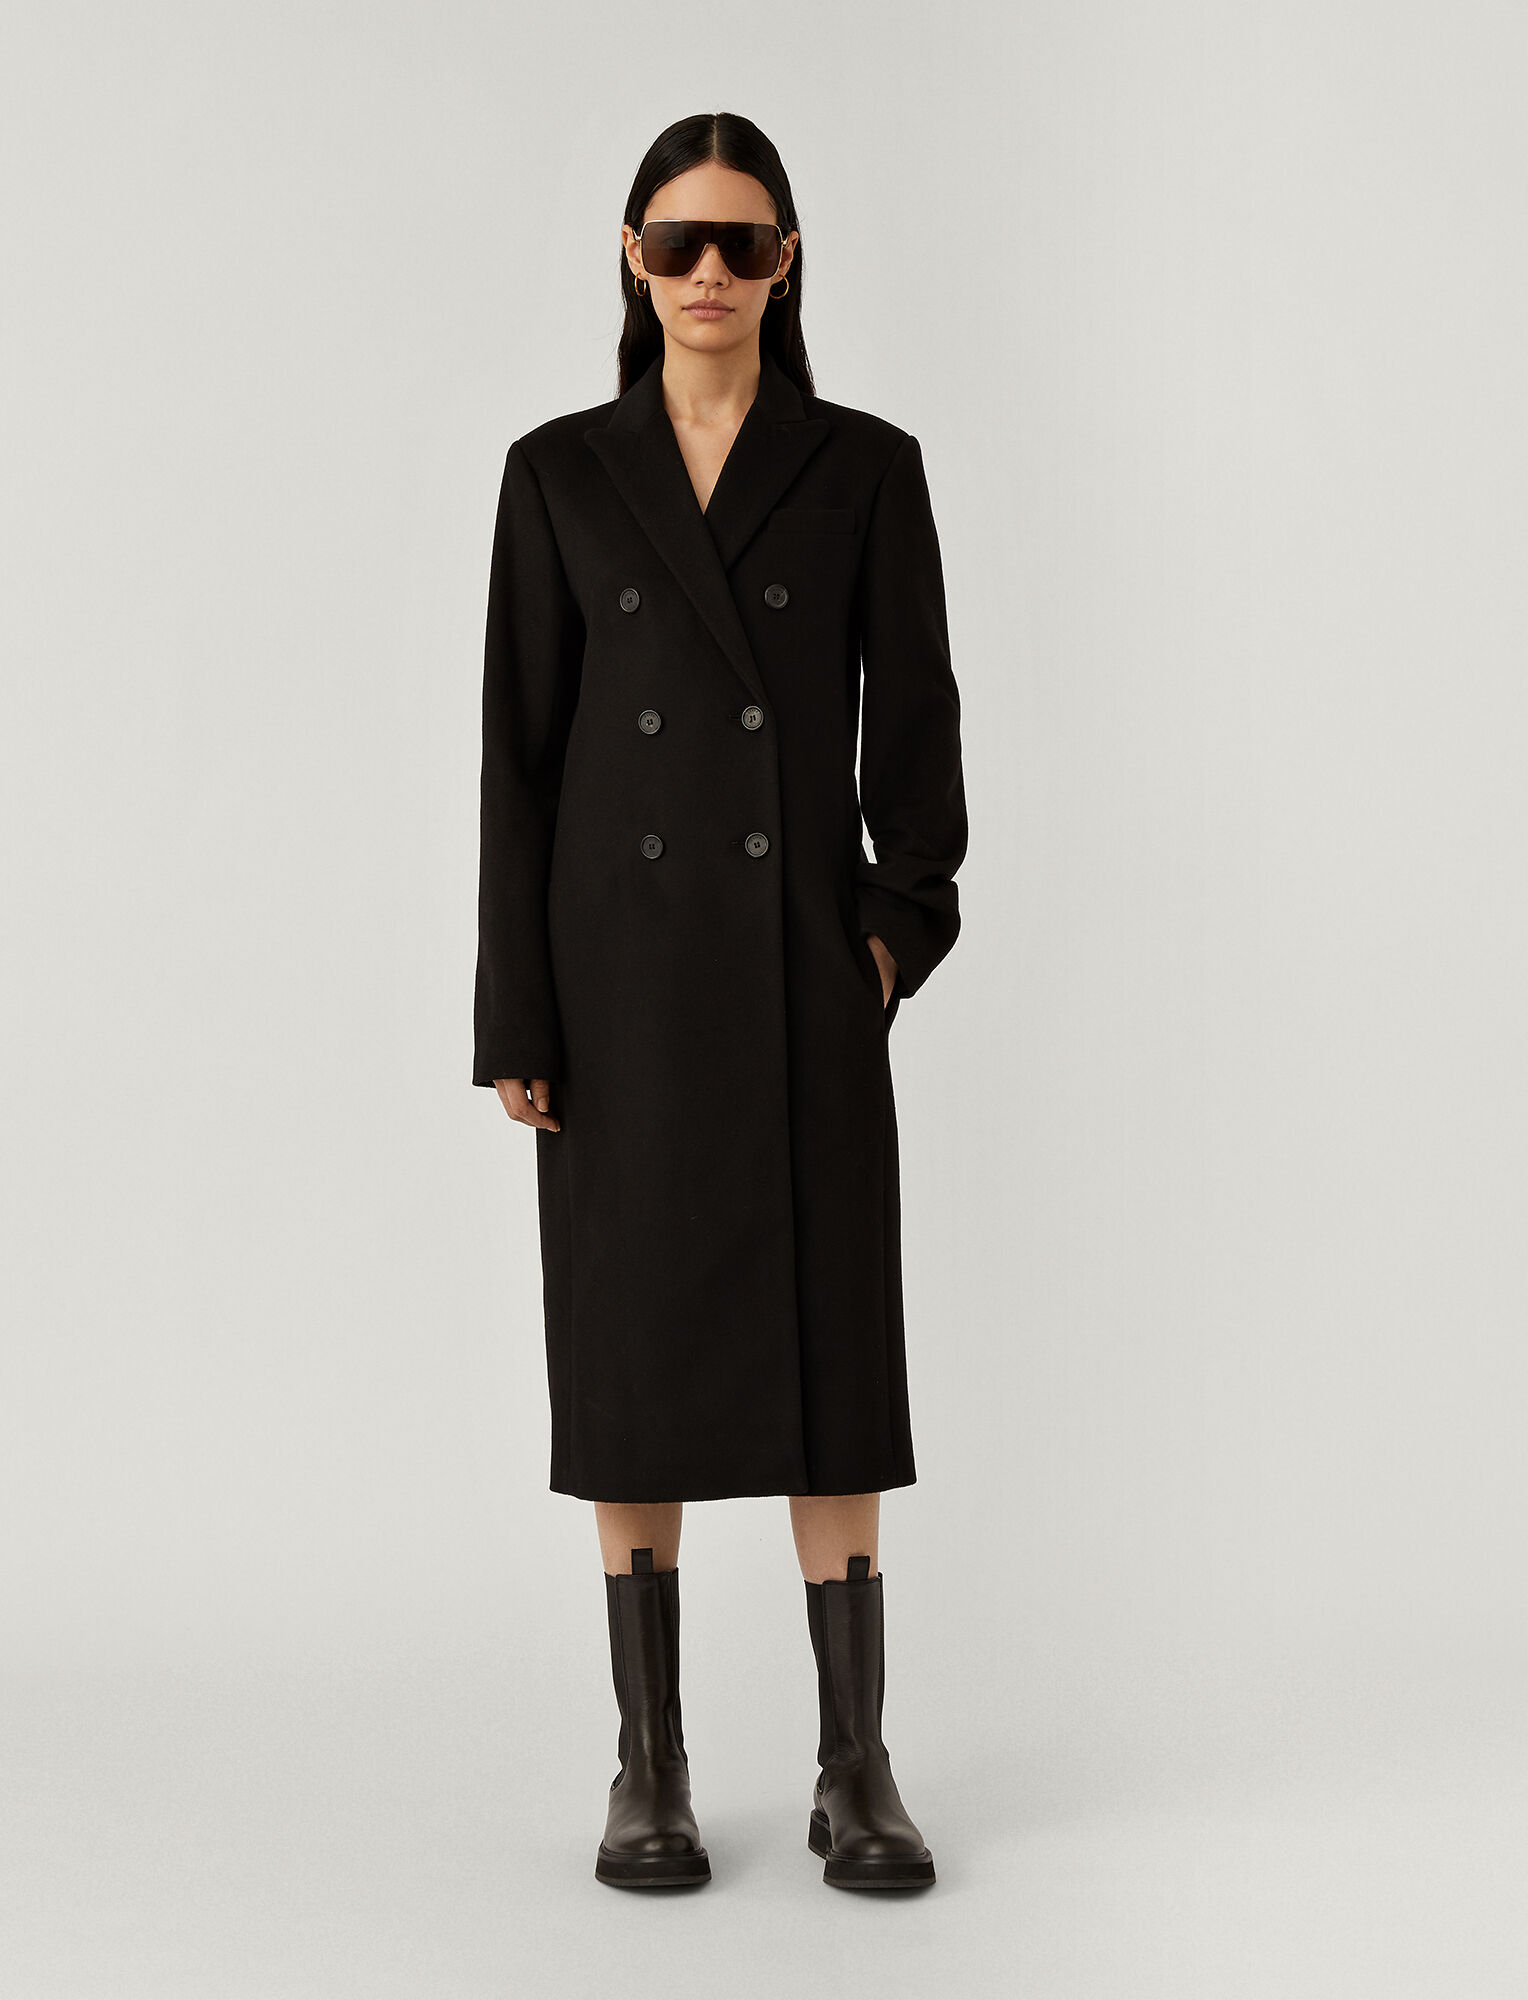 Joseph, Cam Wool Coating Coat, in Black